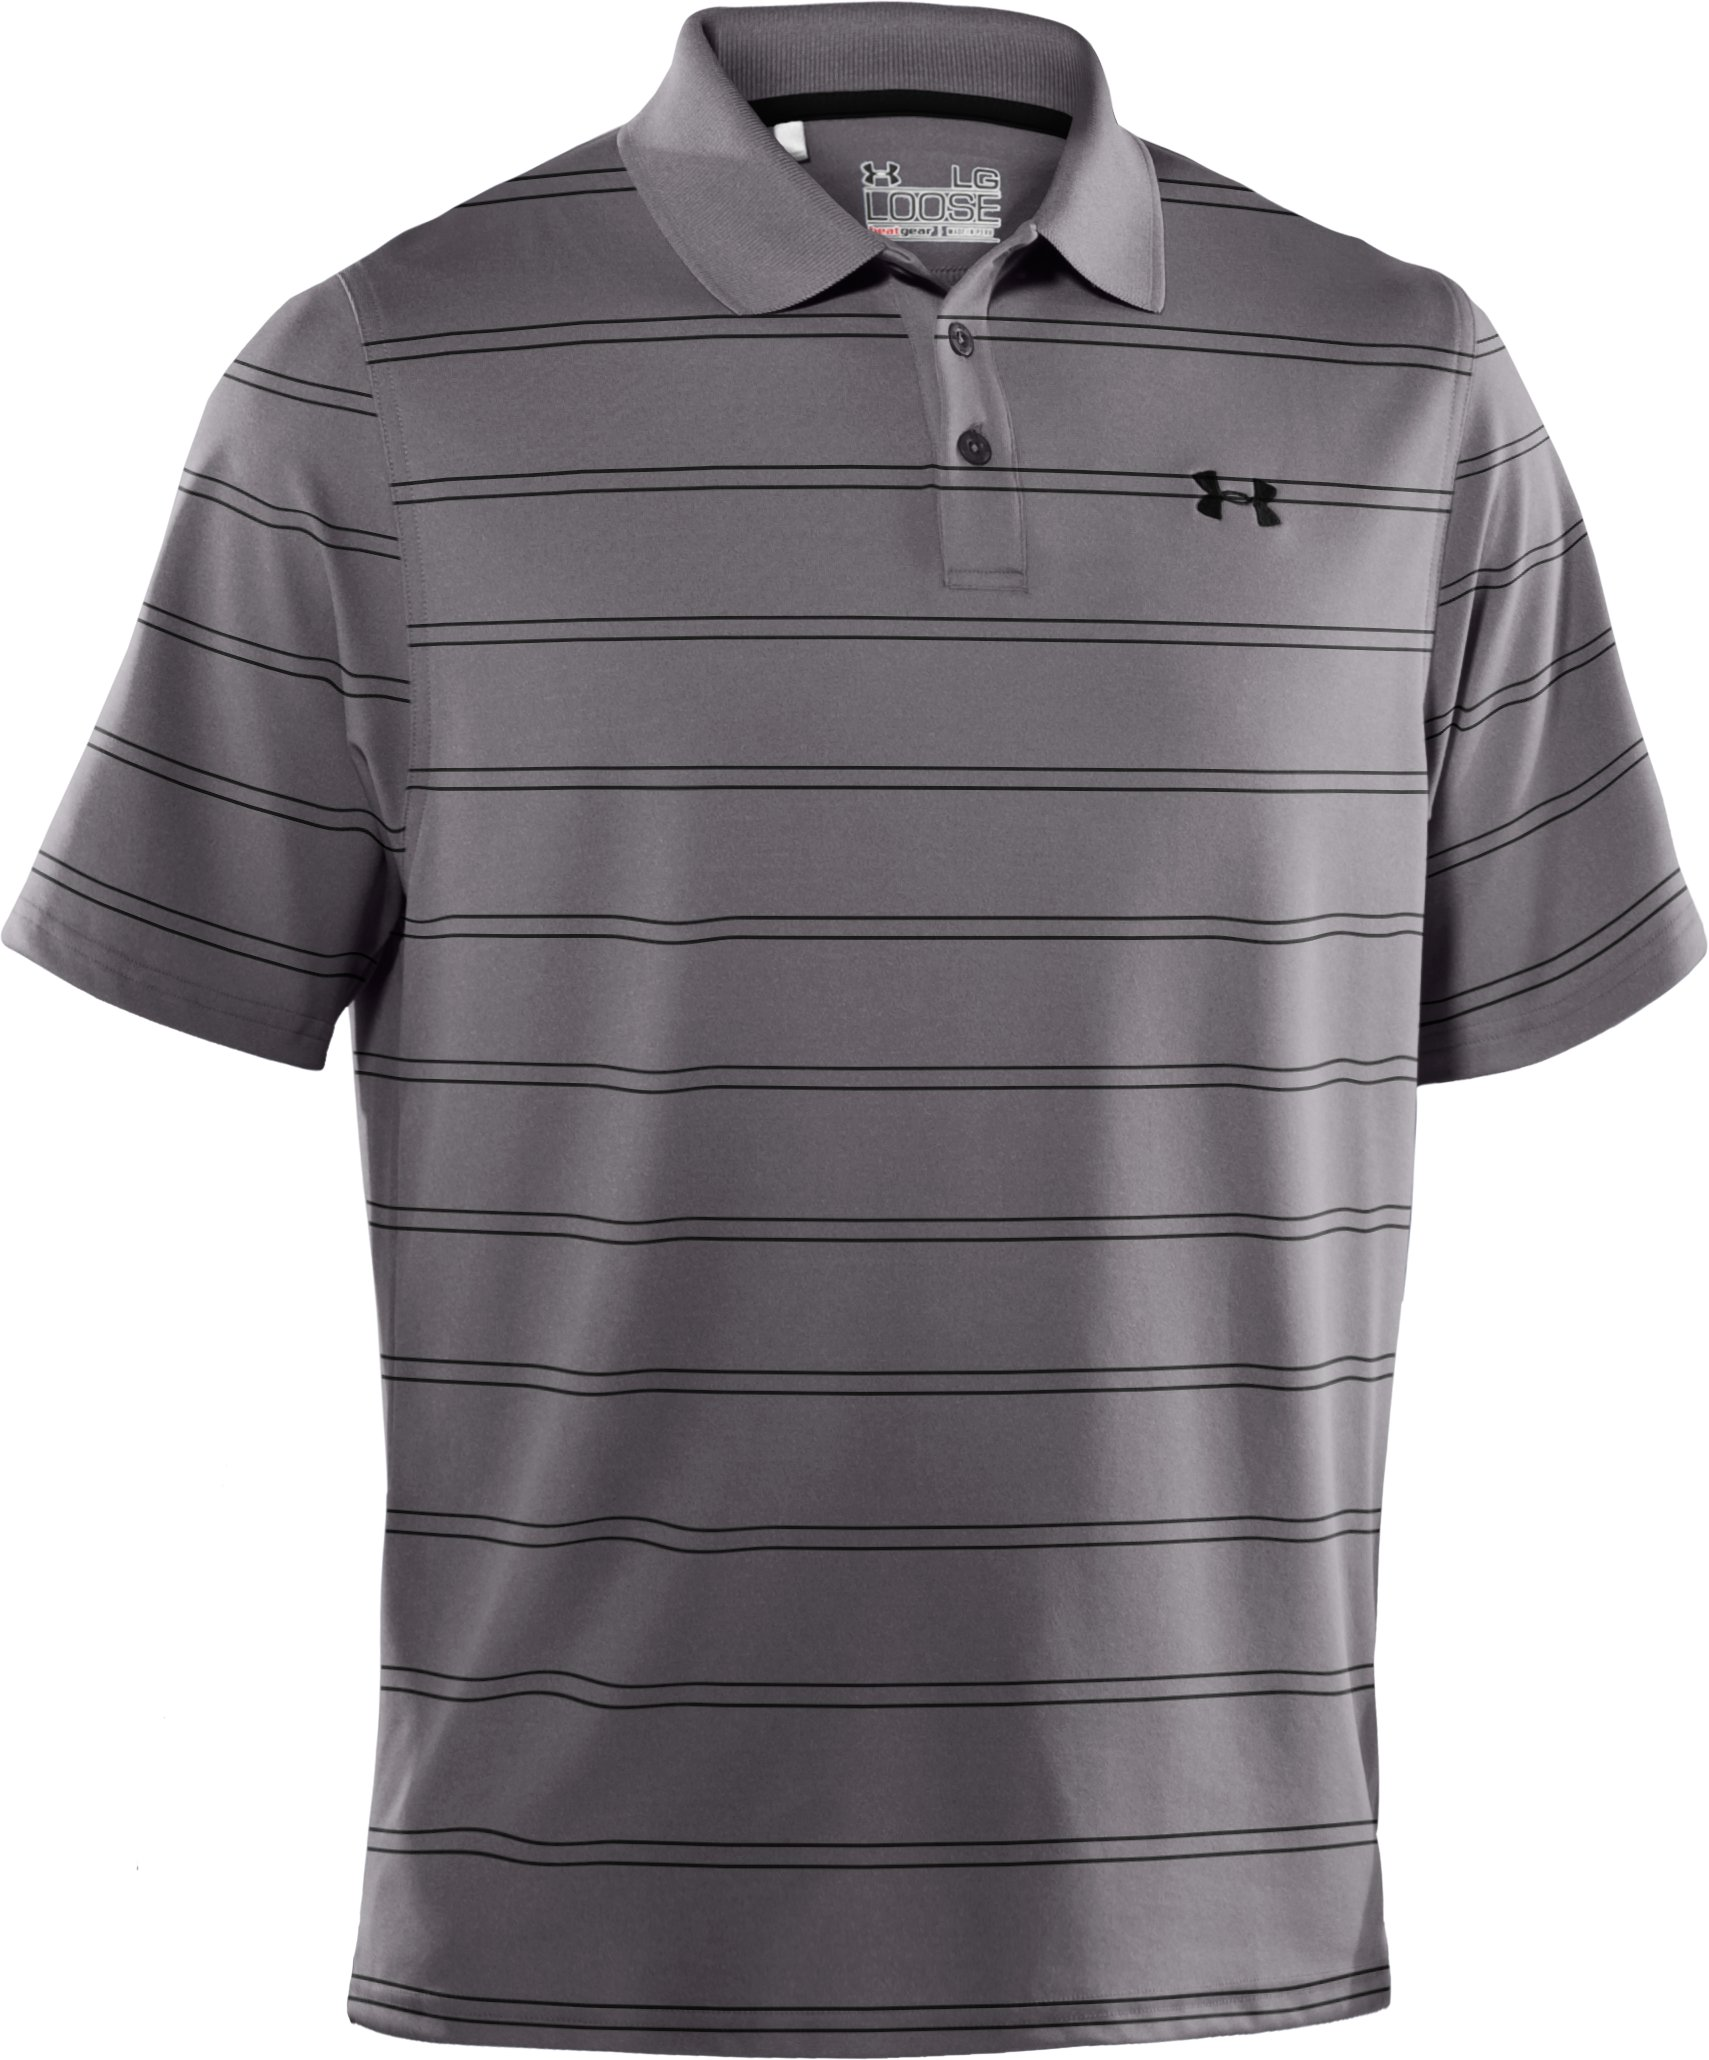 Men's UA Draw Stripe Pique Polo 2.0, Concrete